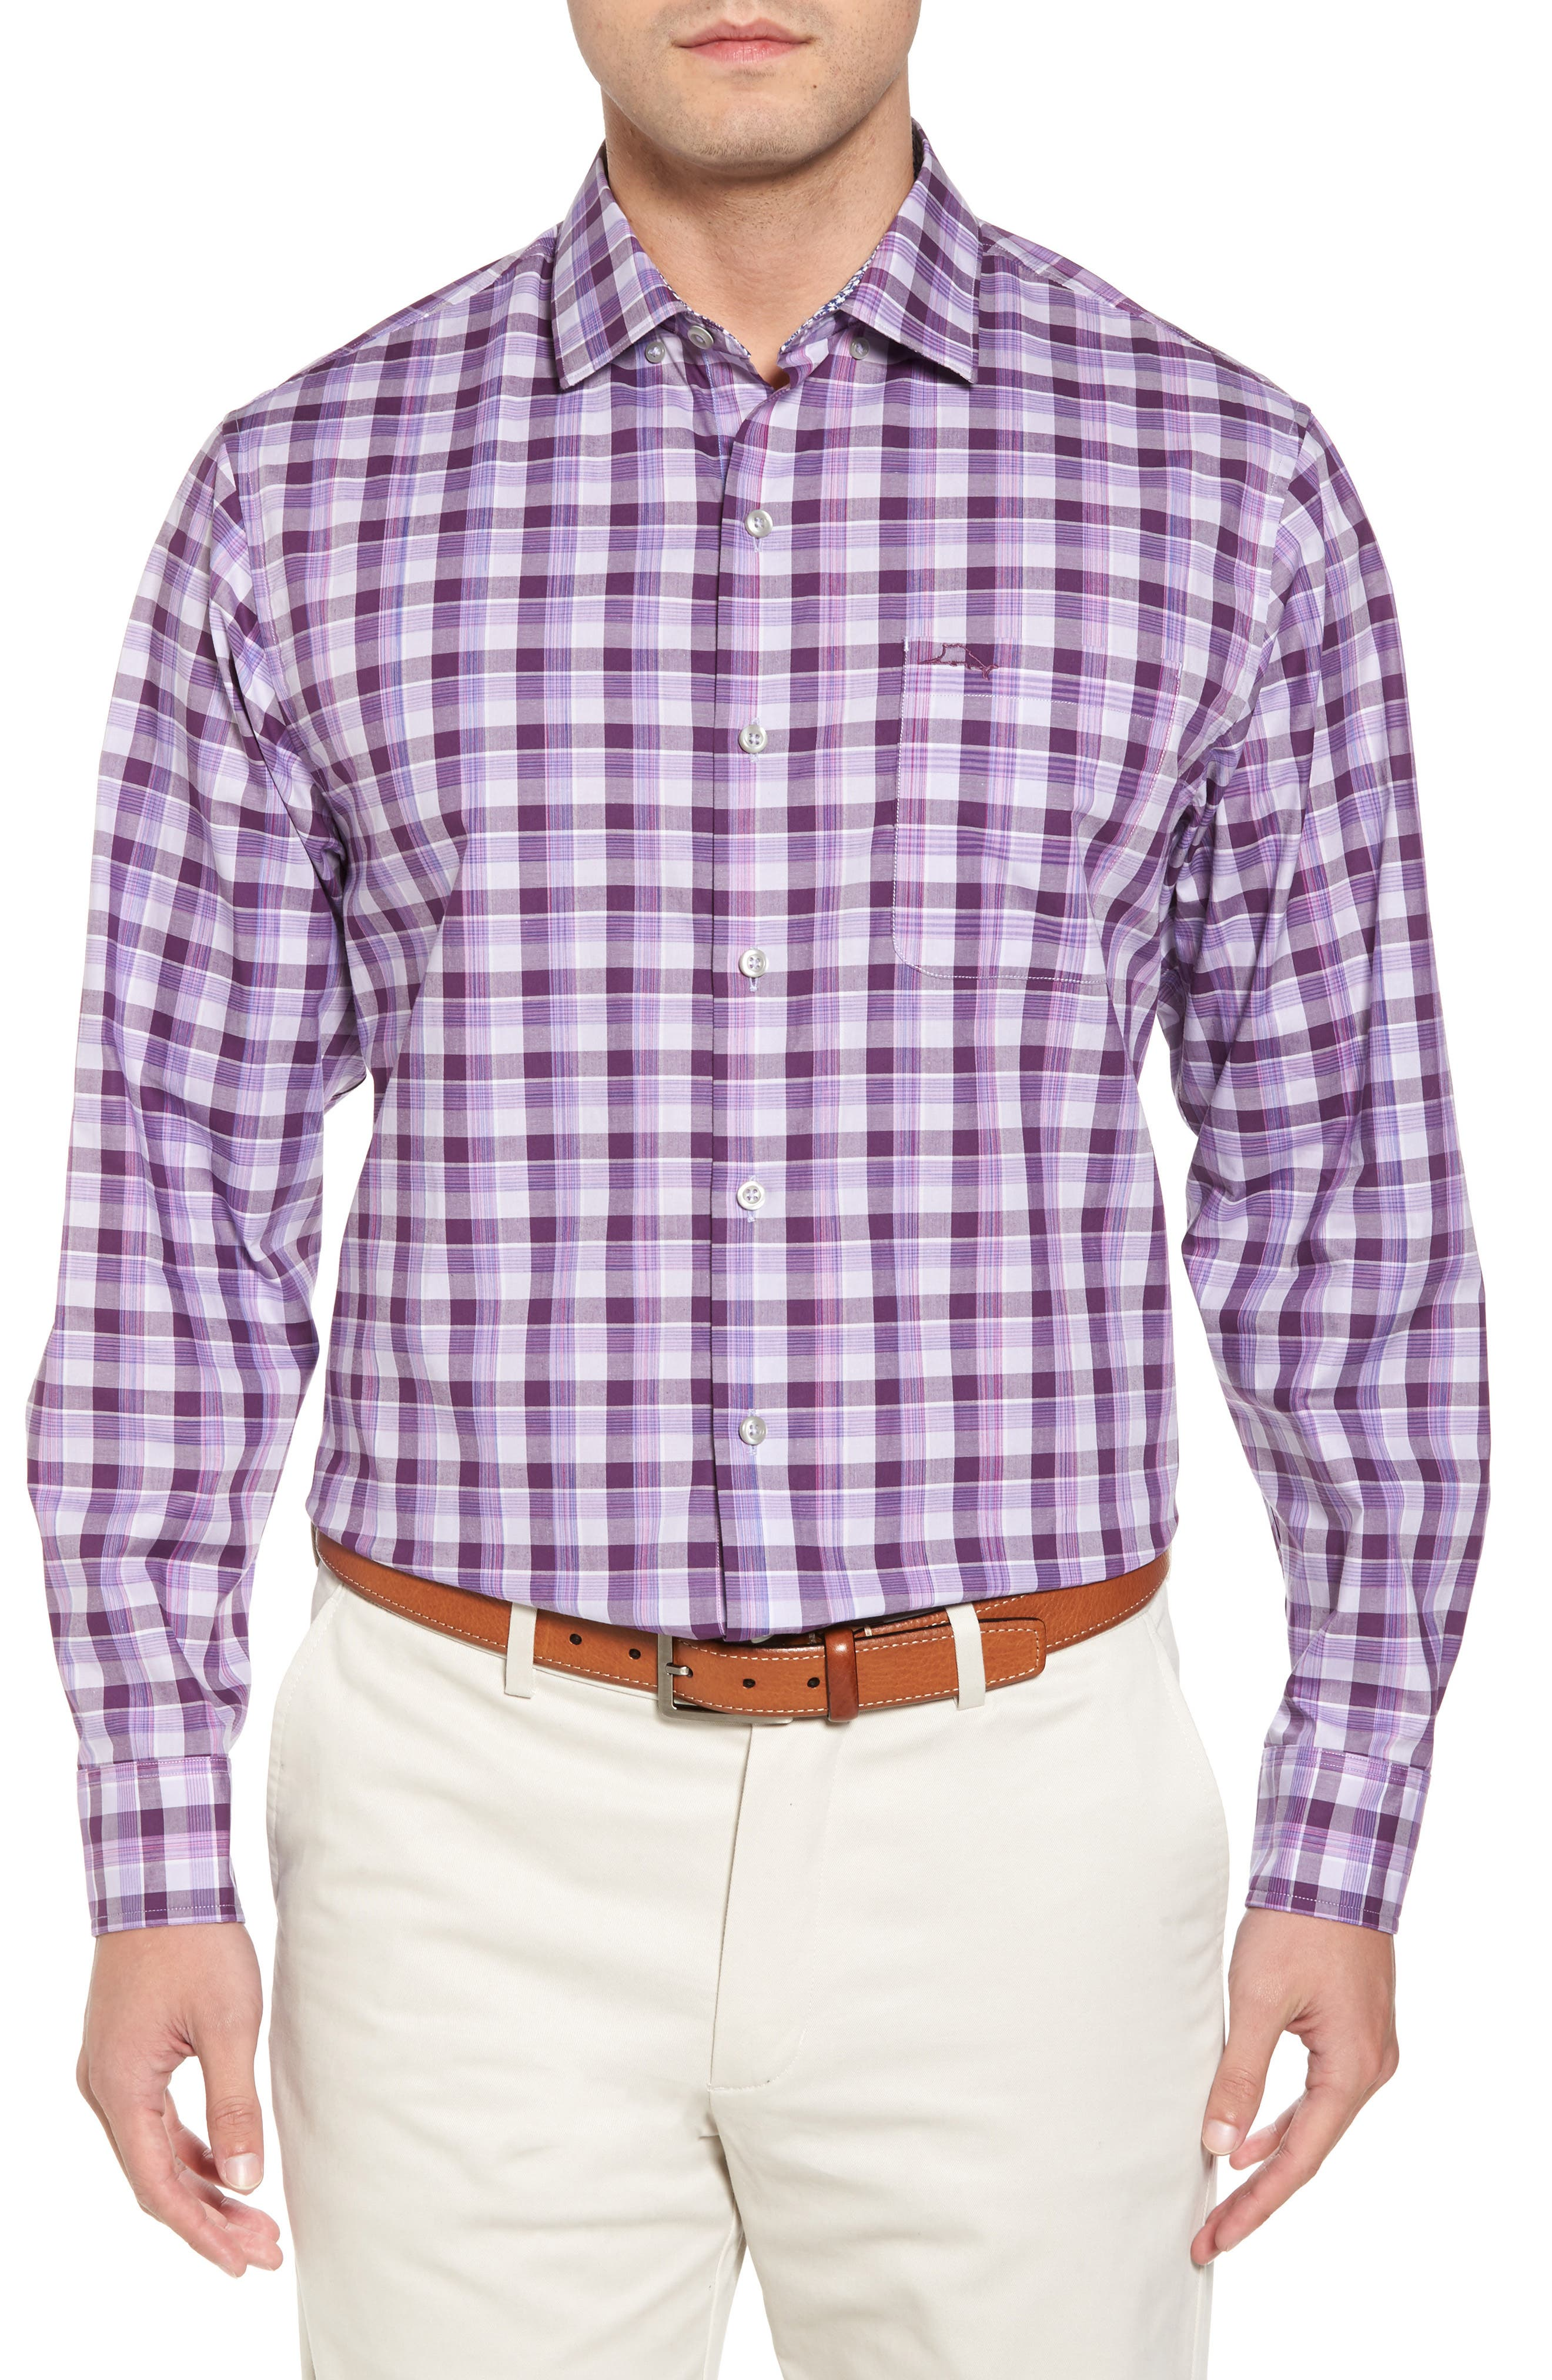 Alternate Image 1 Selected - Tommy Bahama Atlantic Tides Classic Fit Plaid Sport Shirt